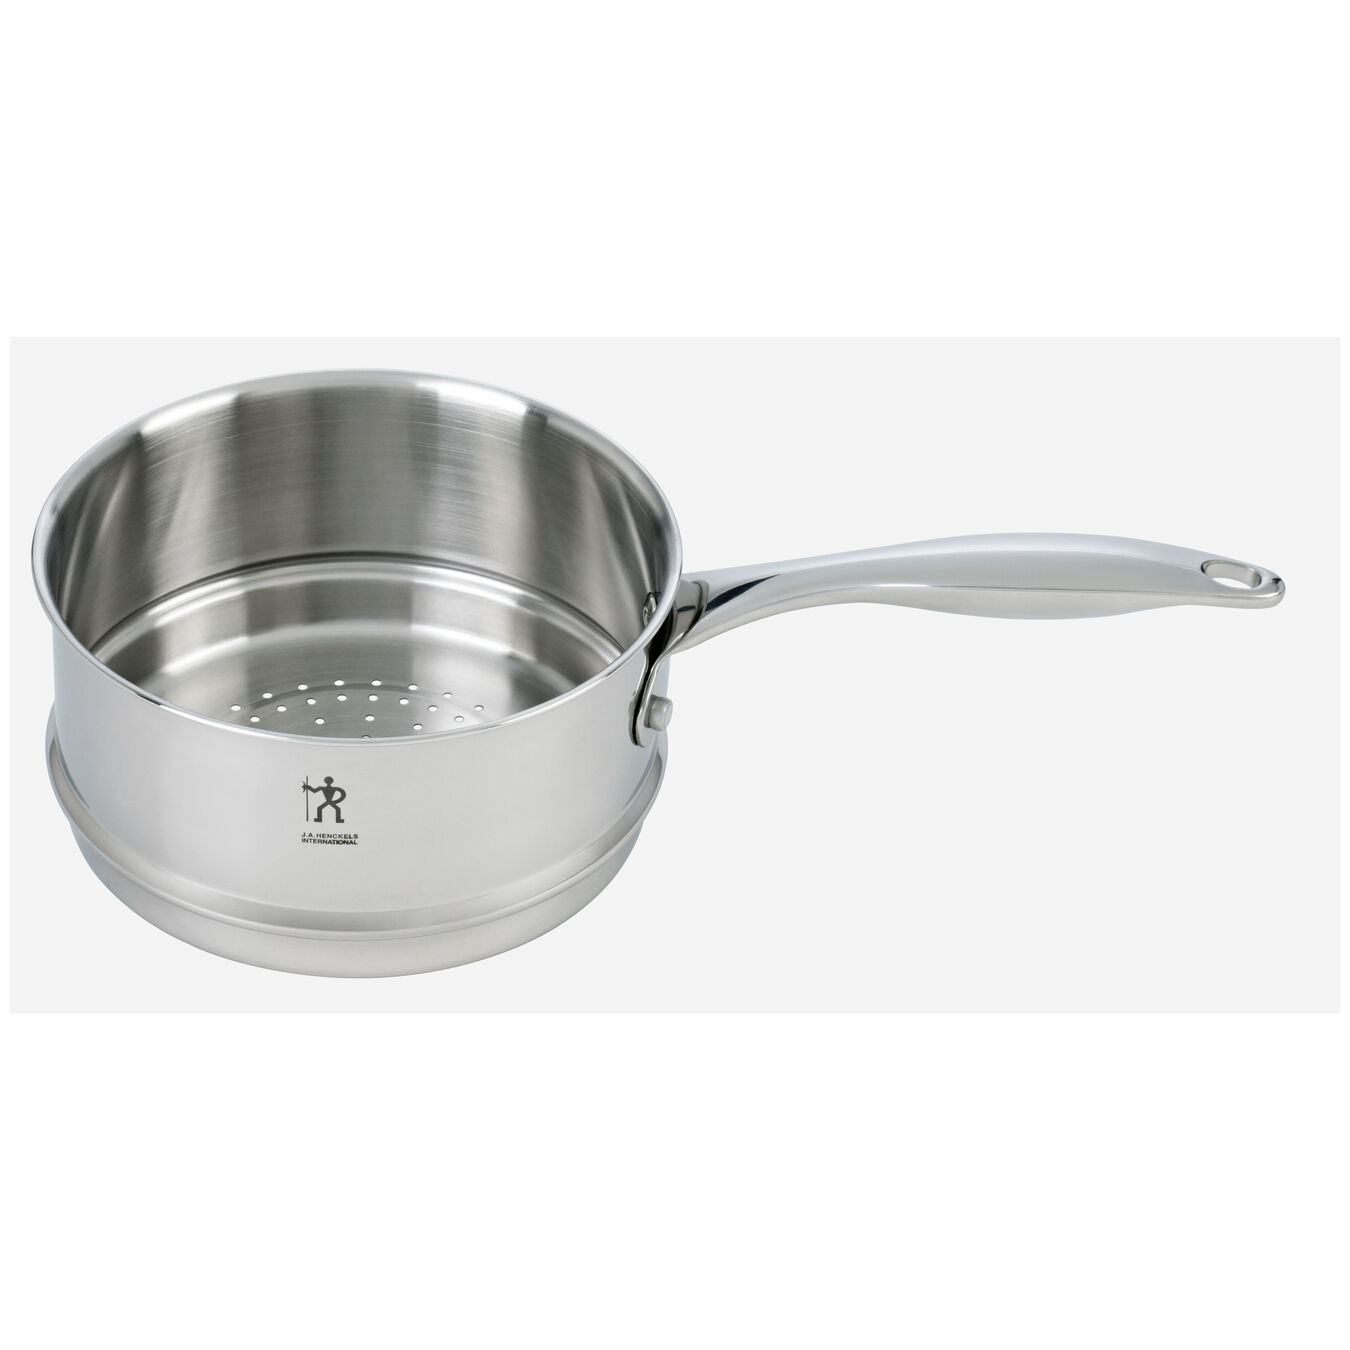 10 Piece 18/10 Stainless Steel Cookware set,,large 5